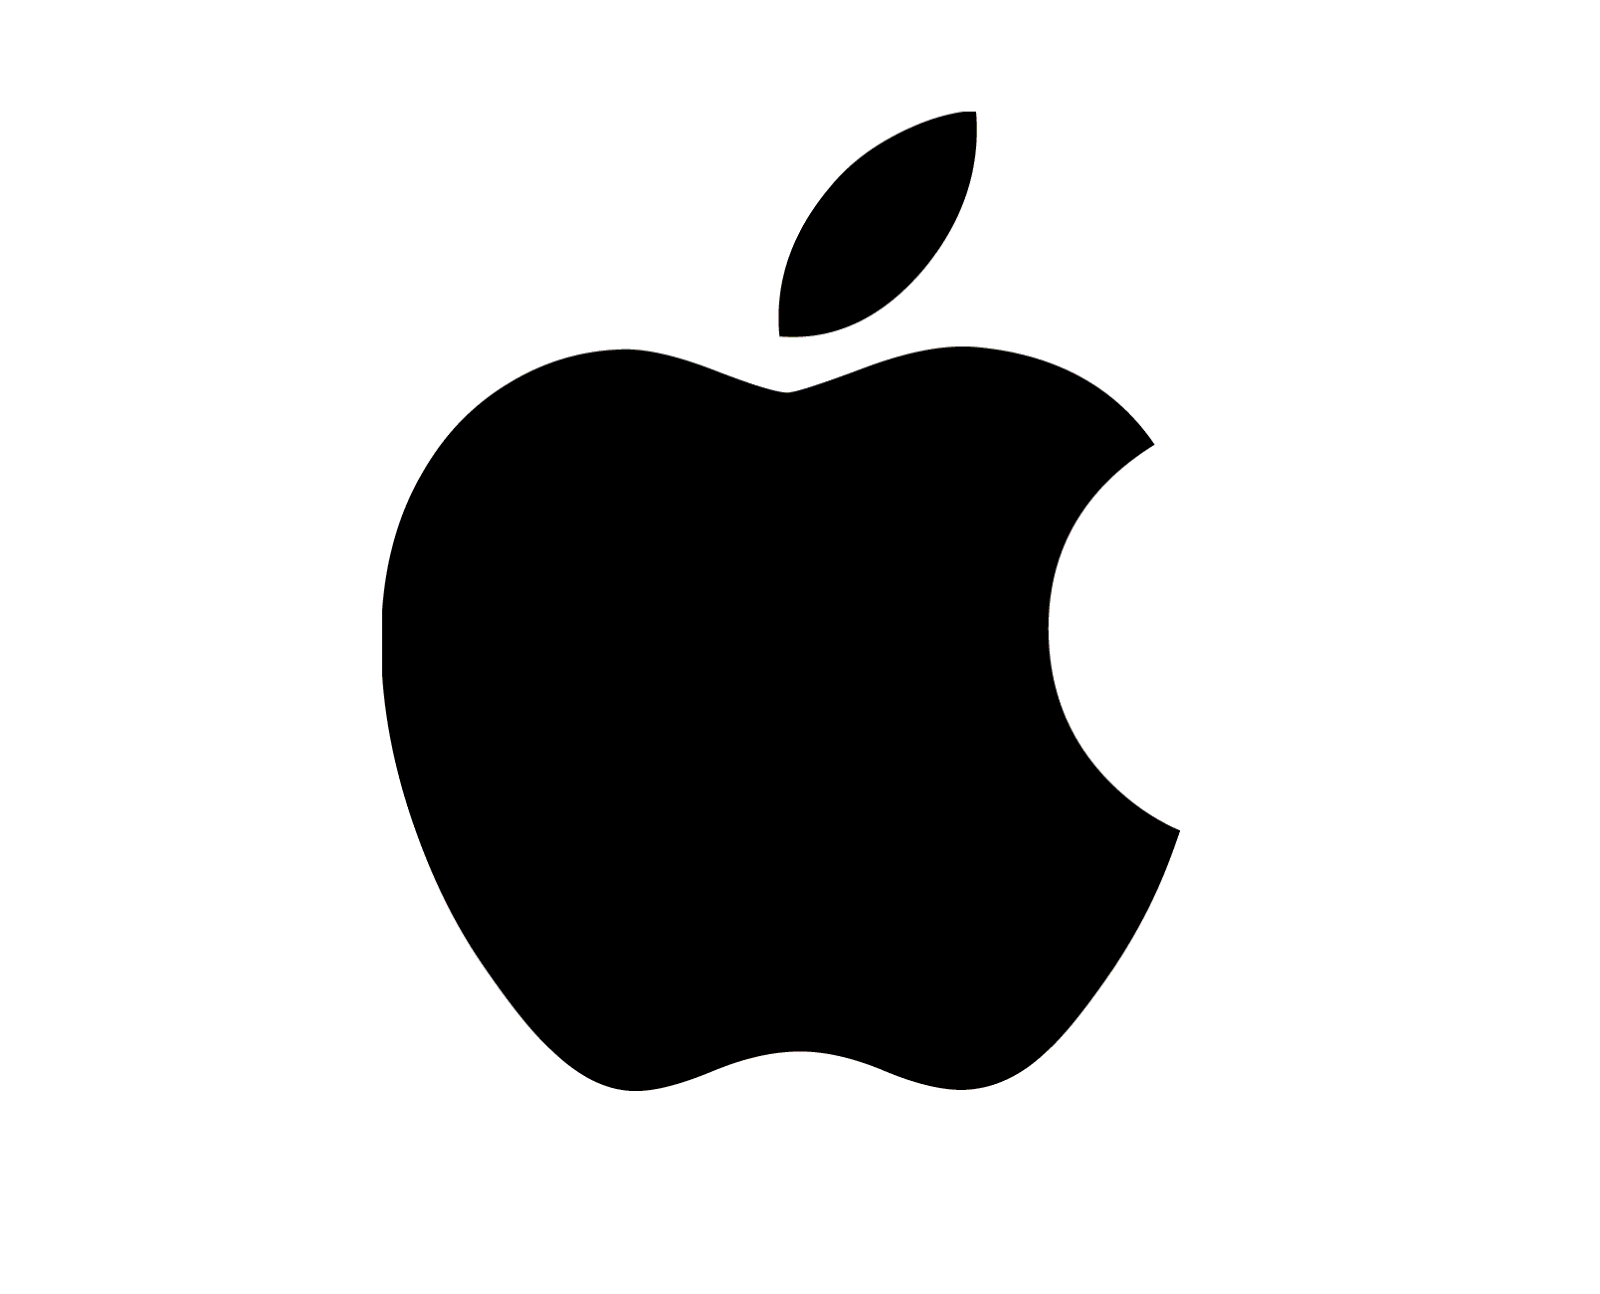 Image official apple logo 2013 pictures 5 hd wallpapersg official apple logo 2013 pictures 5 hd wallpapersg biocorpaavc Gallery